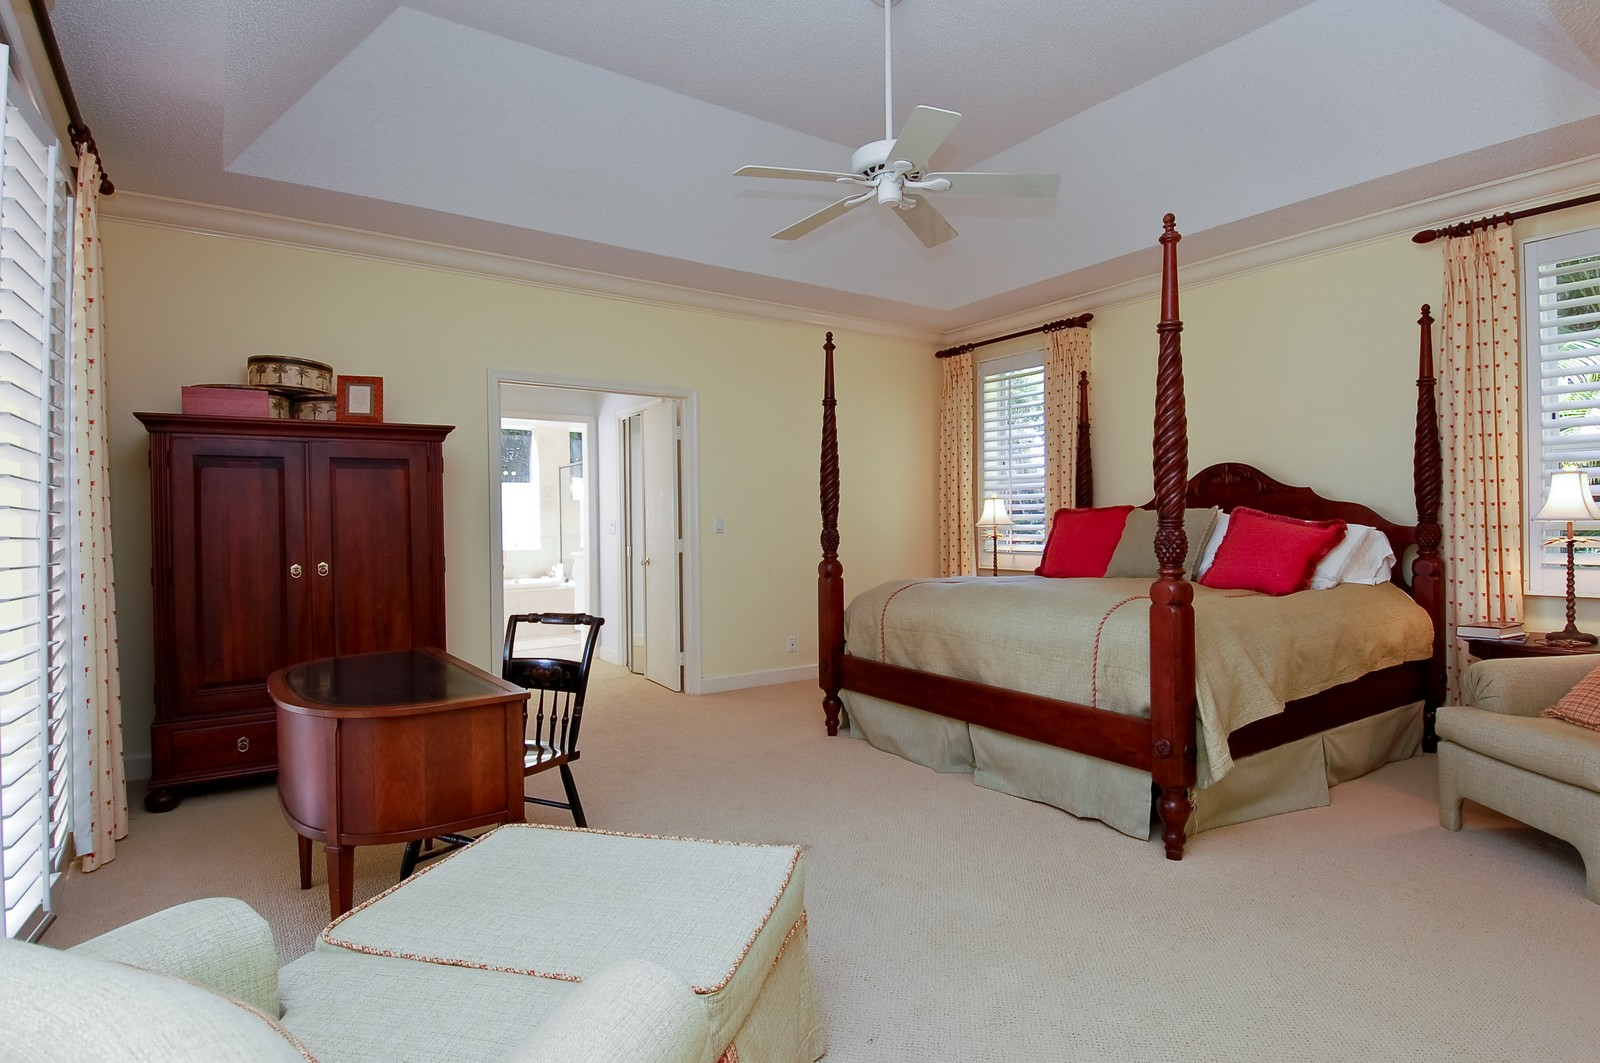 Real Estate Photography - 6329 NW 23rd Way, Boca Raton, FL, 33496 - Master Bedroom